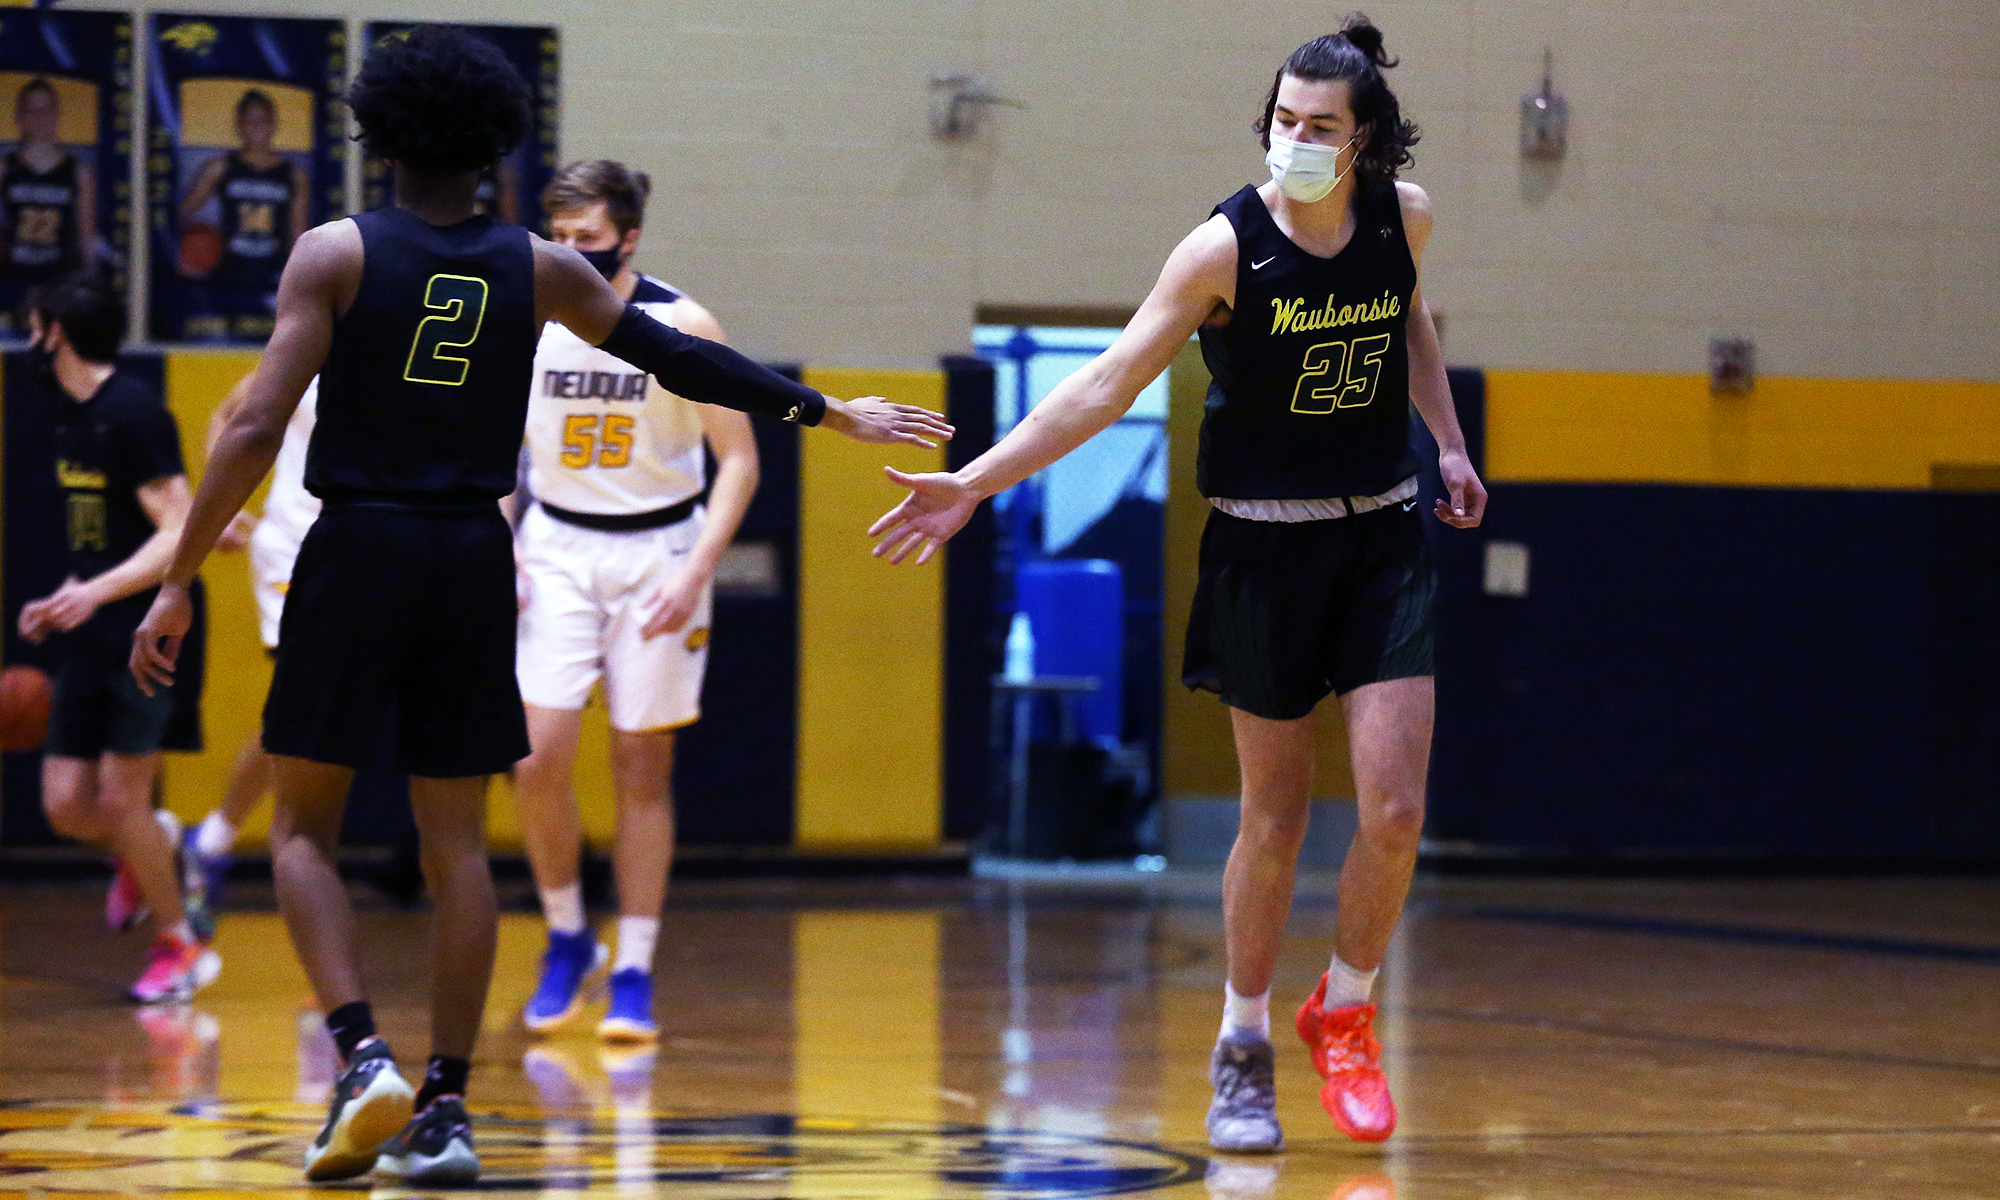 Waubonsie Valley's Isaiah Smith (2) congratulates Carter Langendorf (25) after a good play.